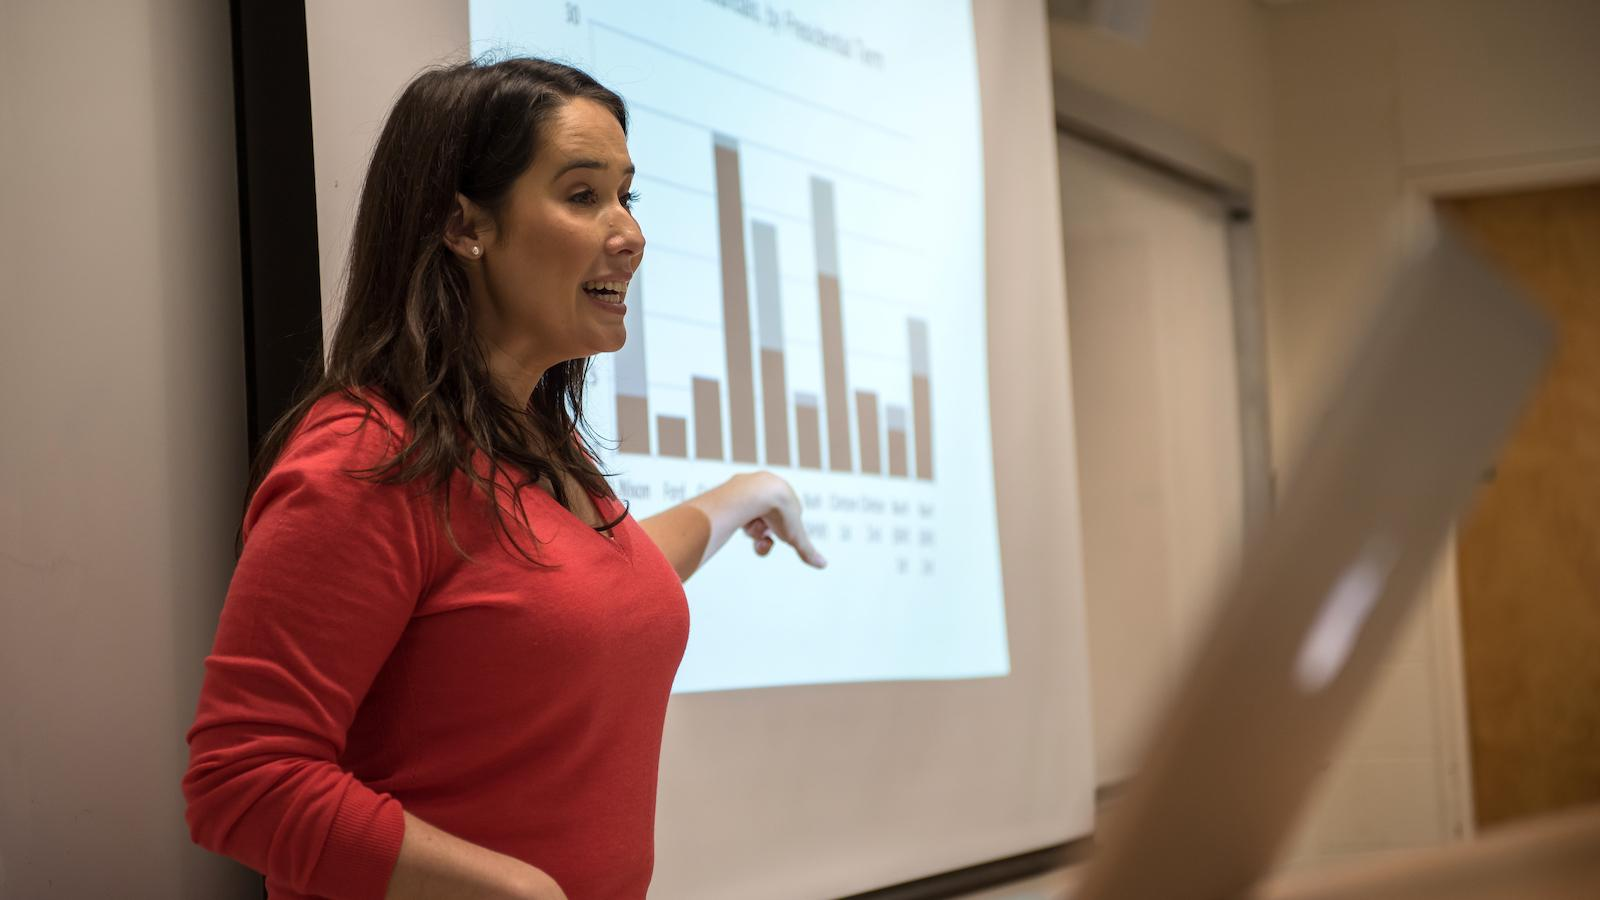 Professor Jenny Garcia pointing at a bar graph on the screen.